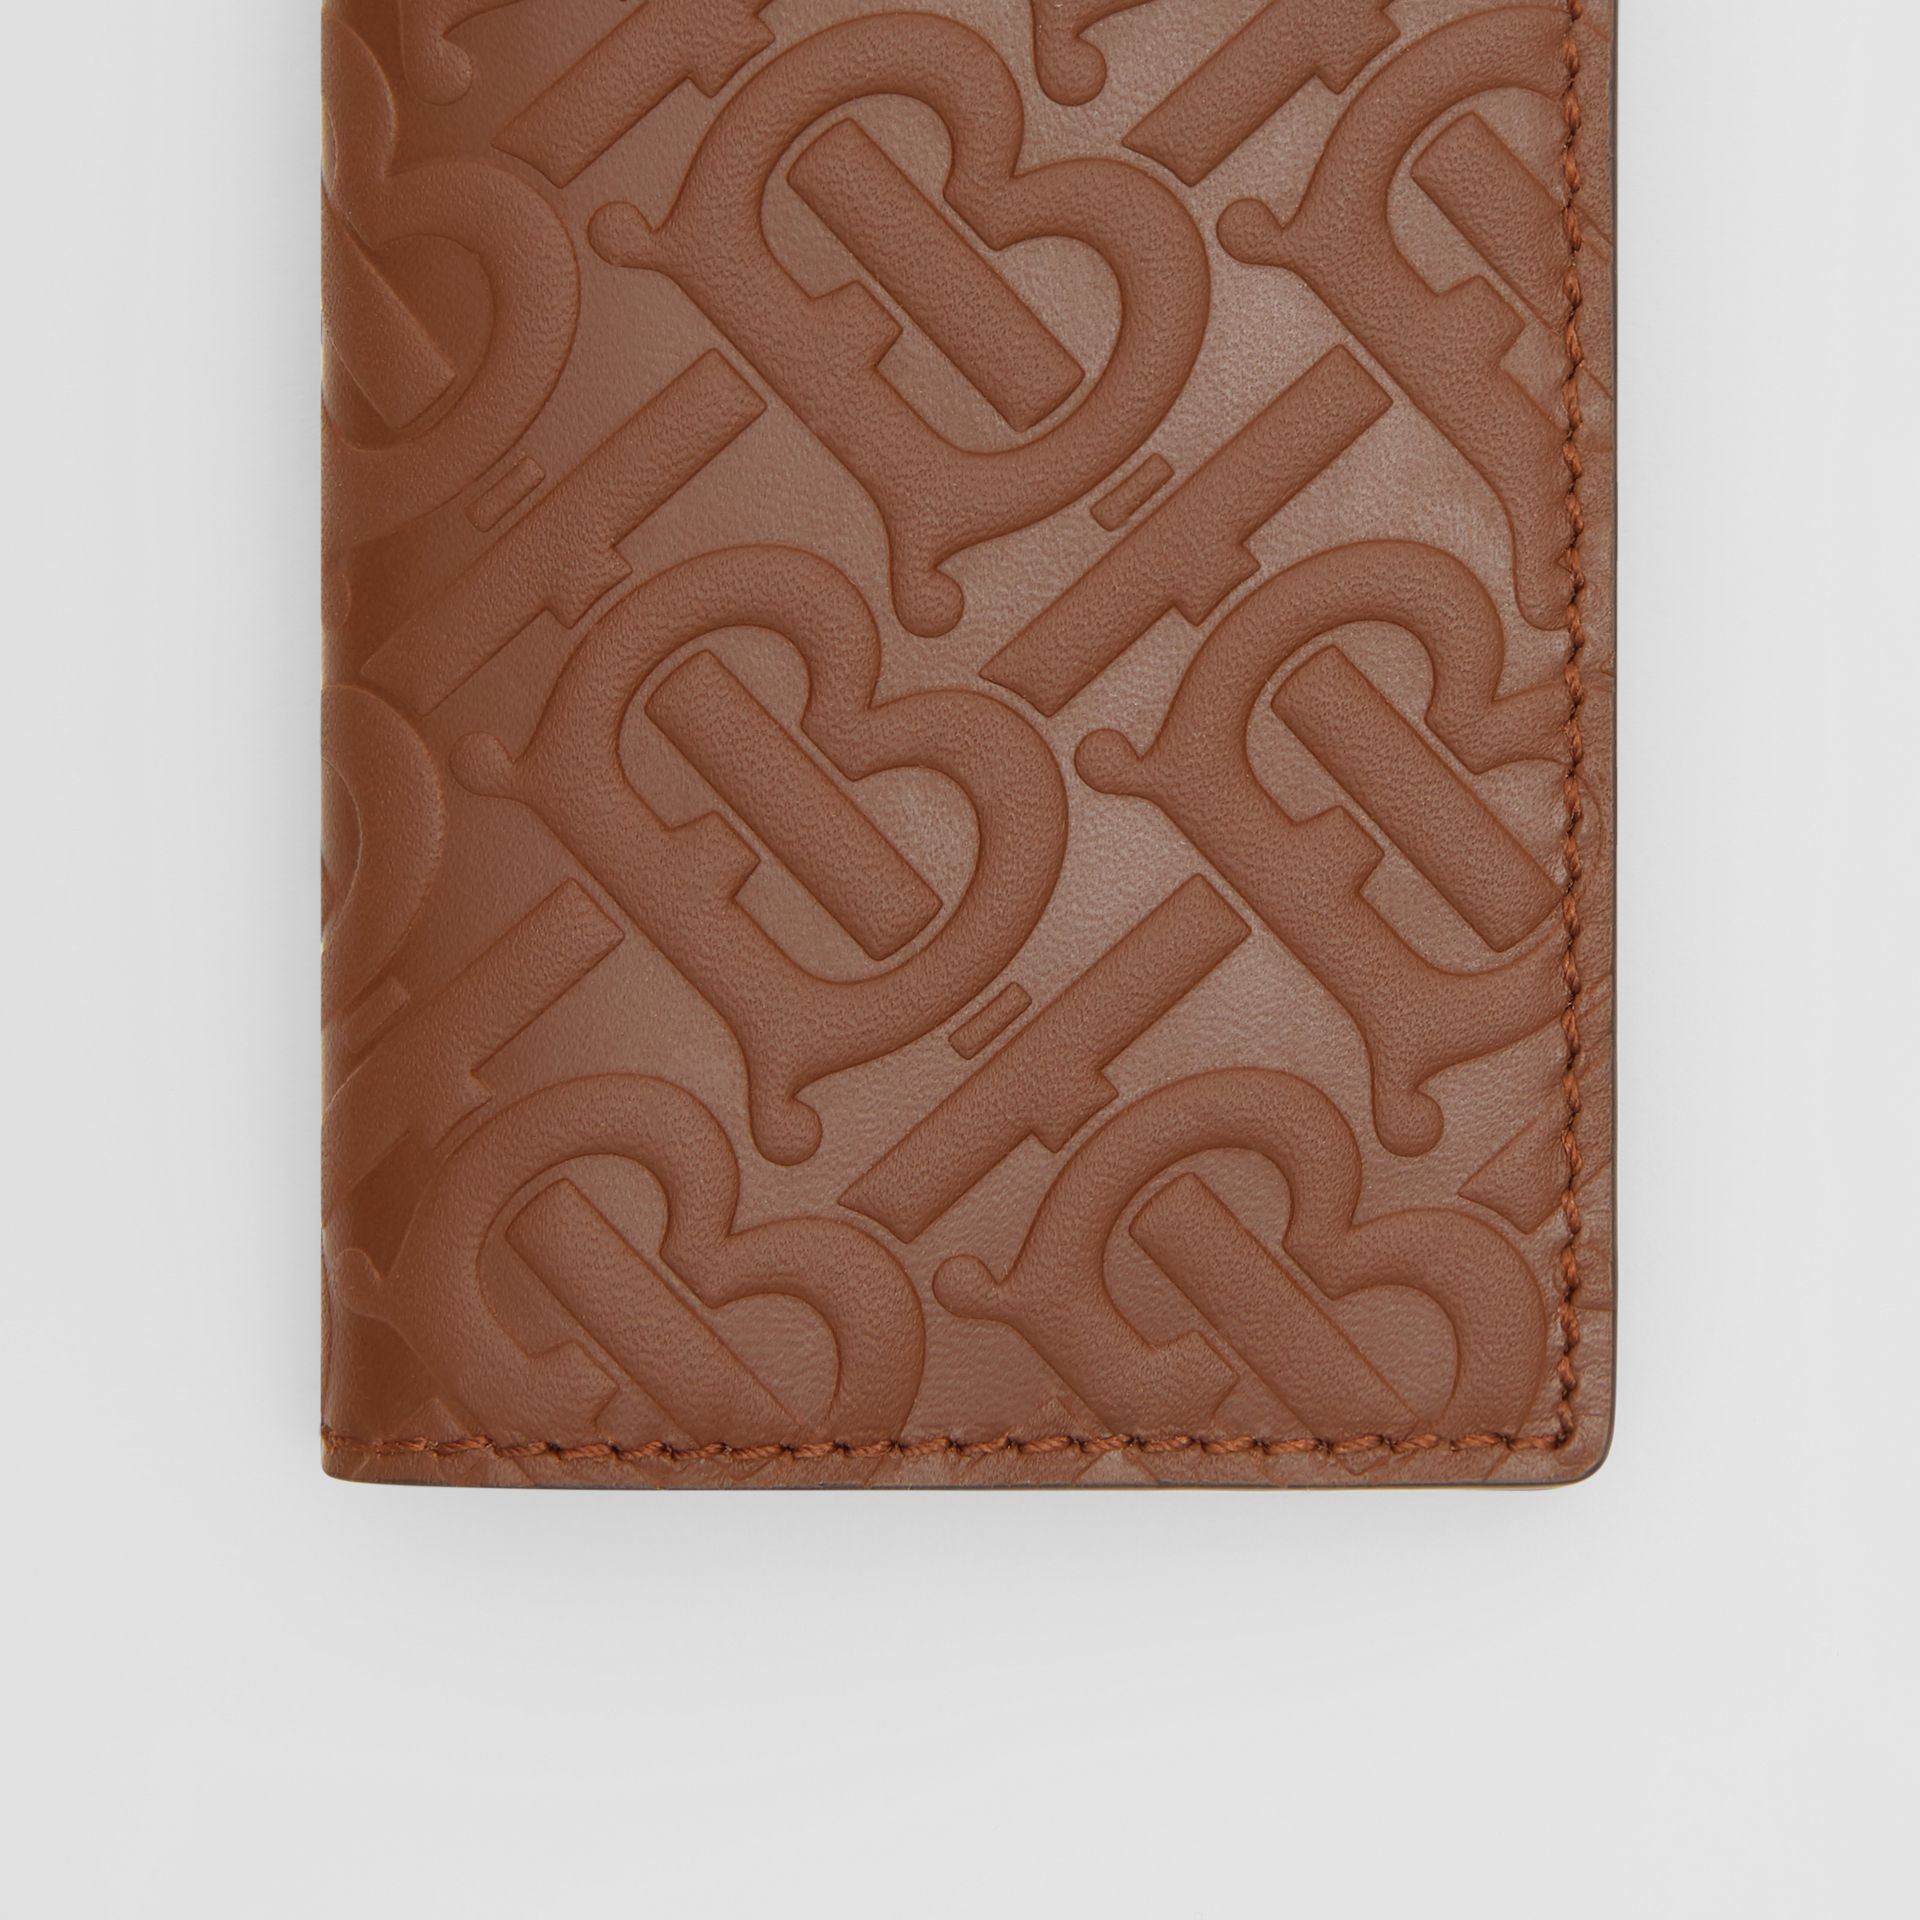 Monogram Leather Bifold Card Case in Dark Tan - Men | Burberry - gallery image 1